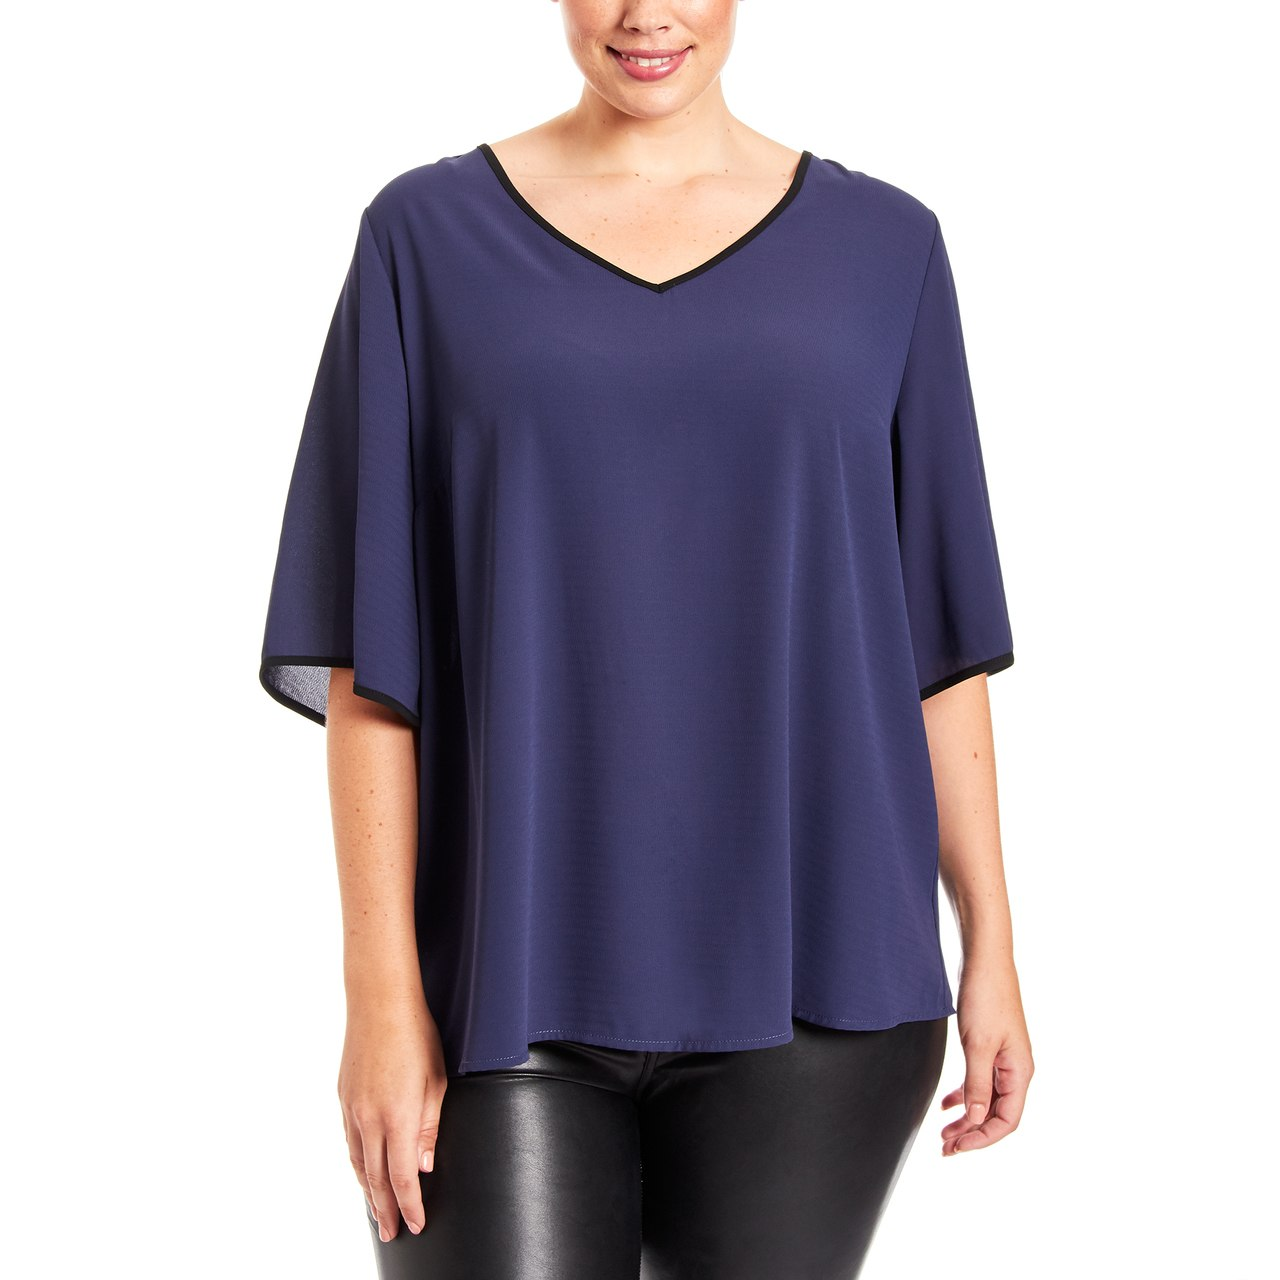 Curvy Tie Back Top With Contrast Trim In Navy